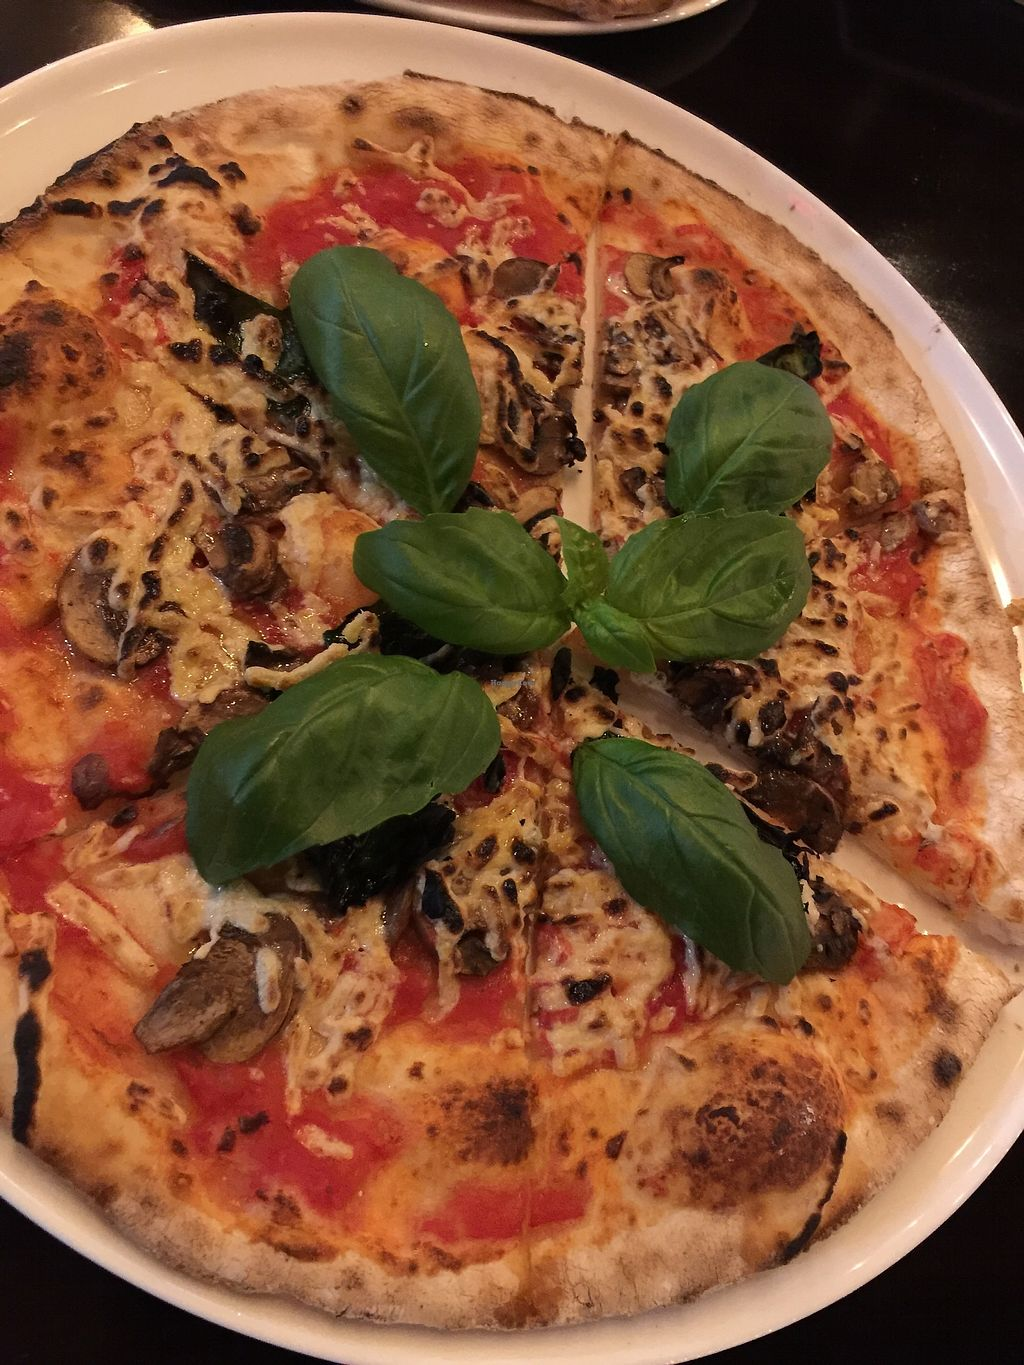 """Photo of MidiCi  by <a href=""""/members/profile/BeccaBochenek"""">BeccaBochenek</a> <br/>Vegan gluten free mushroom and basil pizza with Daiya cheese <br/> November 20, 2017  - <a href='/contact/abuse/image/104788/327603'>Report</a>"""